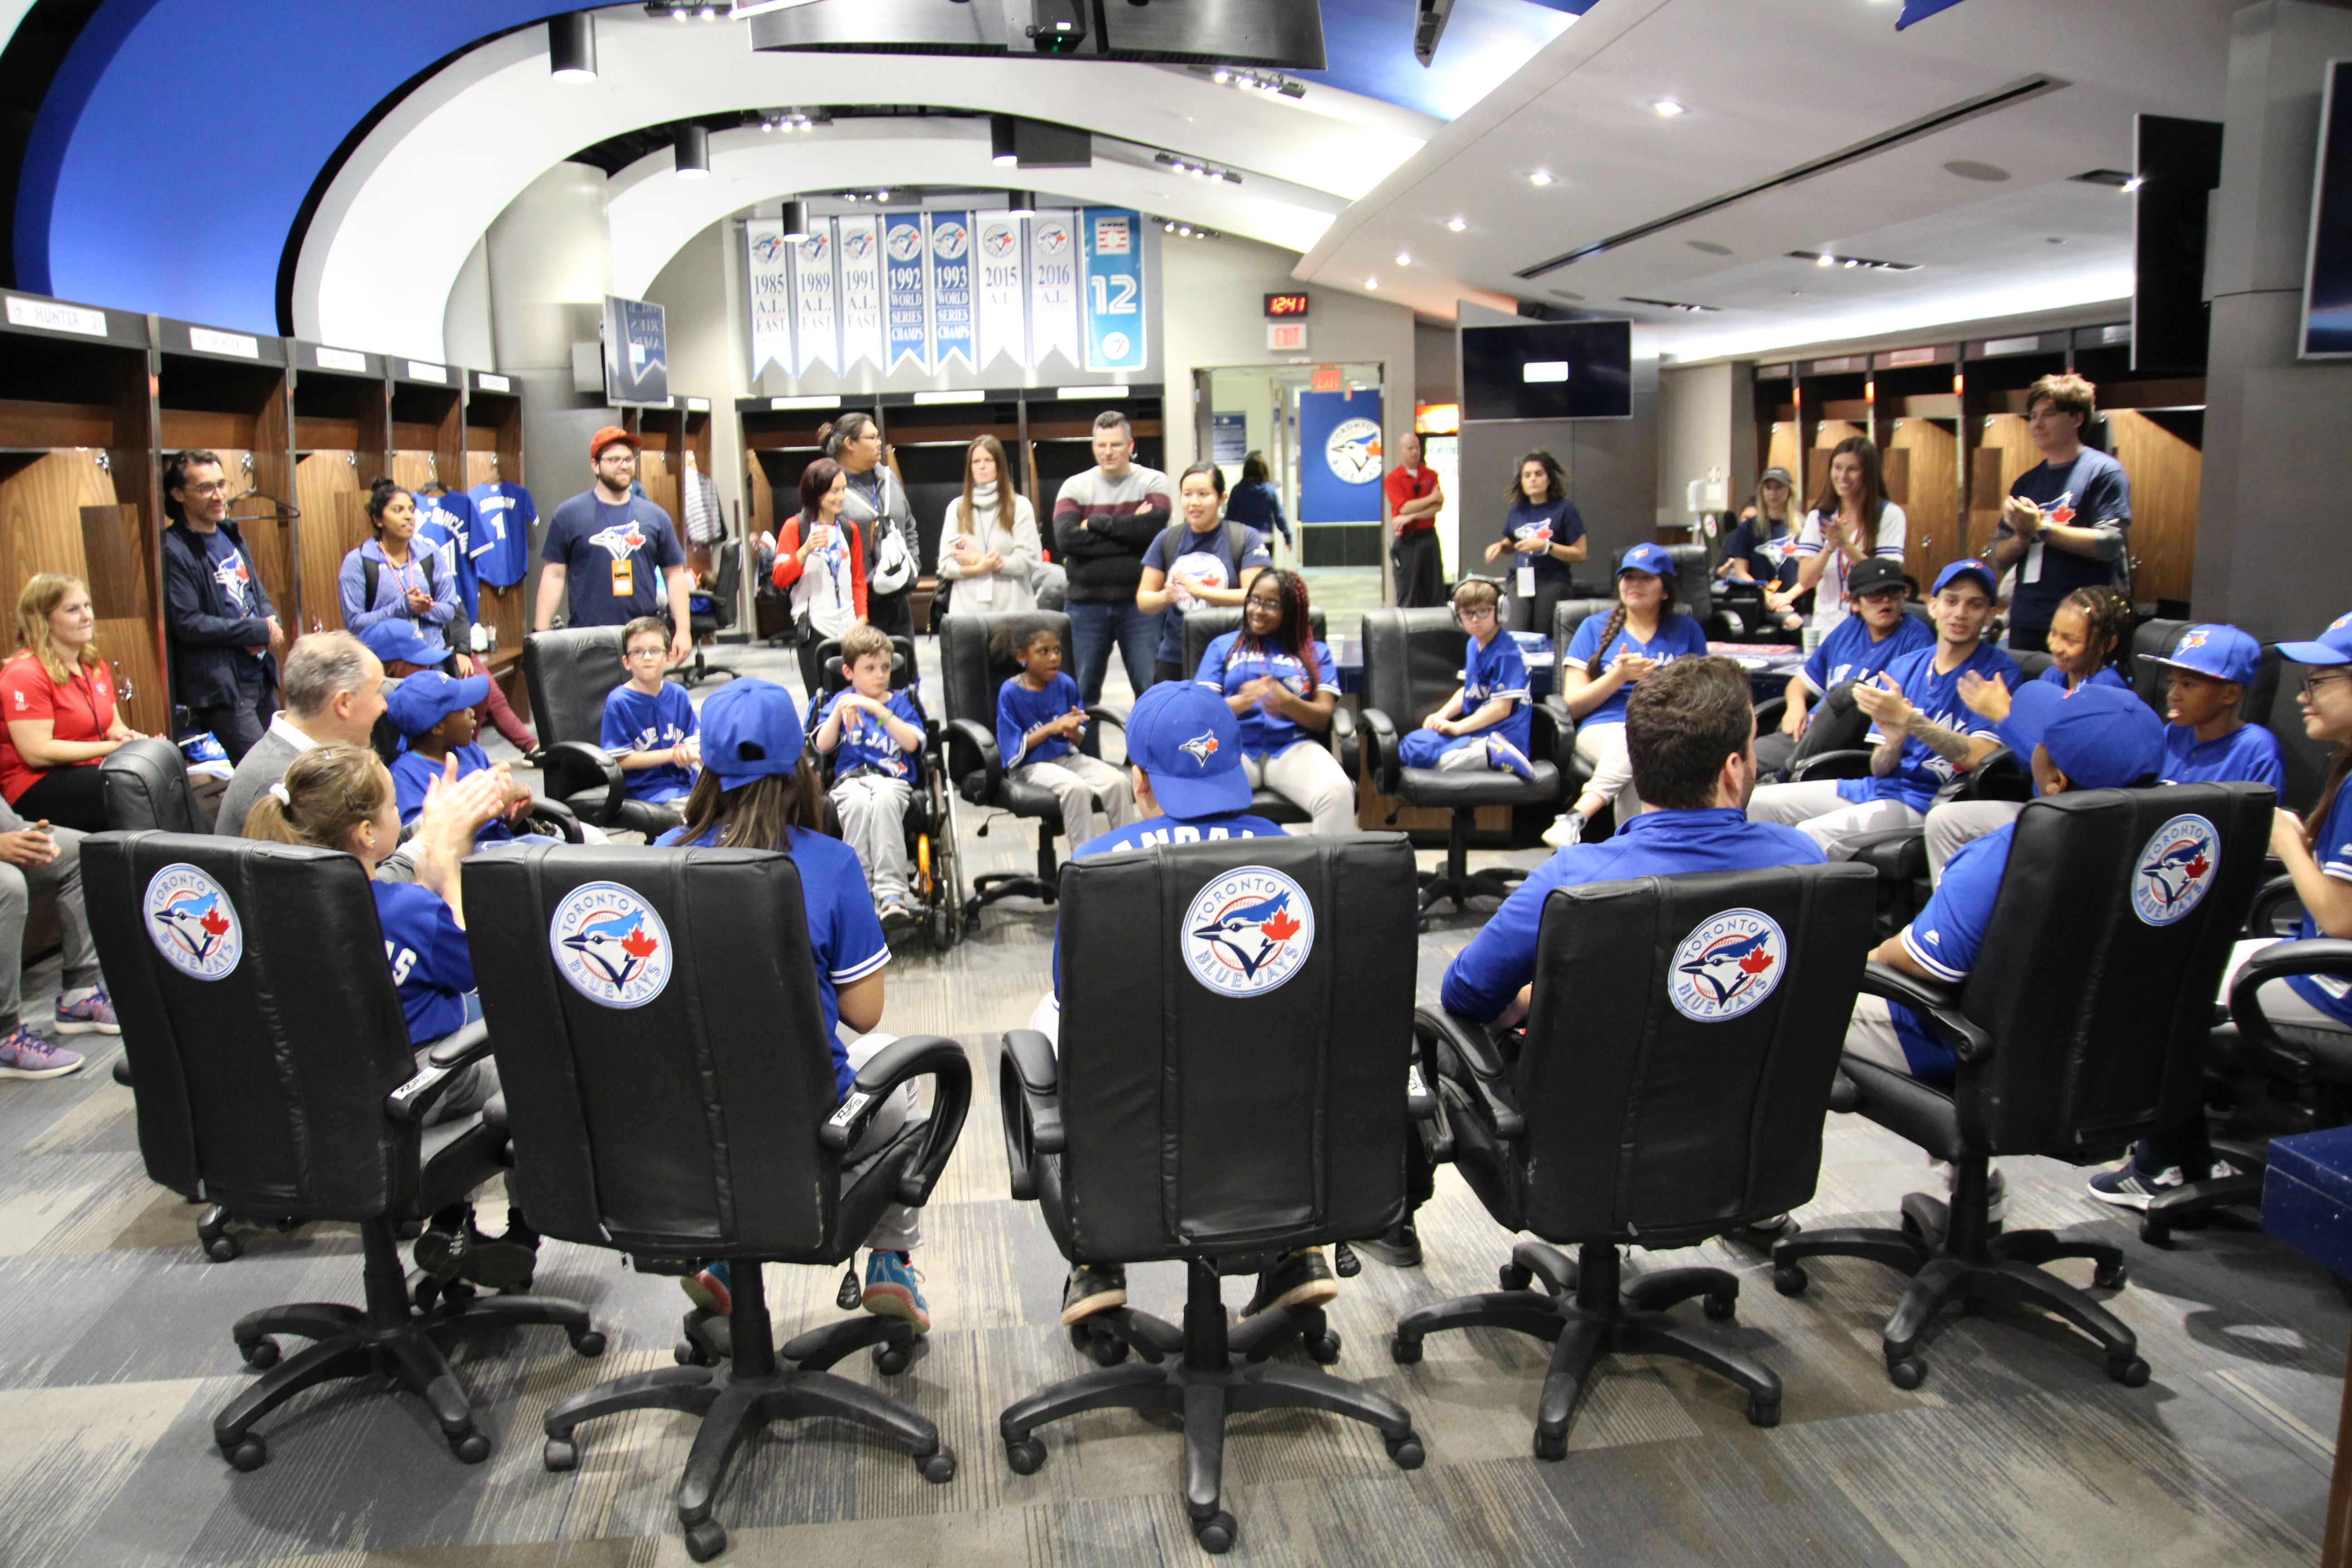 Unstoppable Kids sit in a circle in the BLue Jays dressing room playing a game.